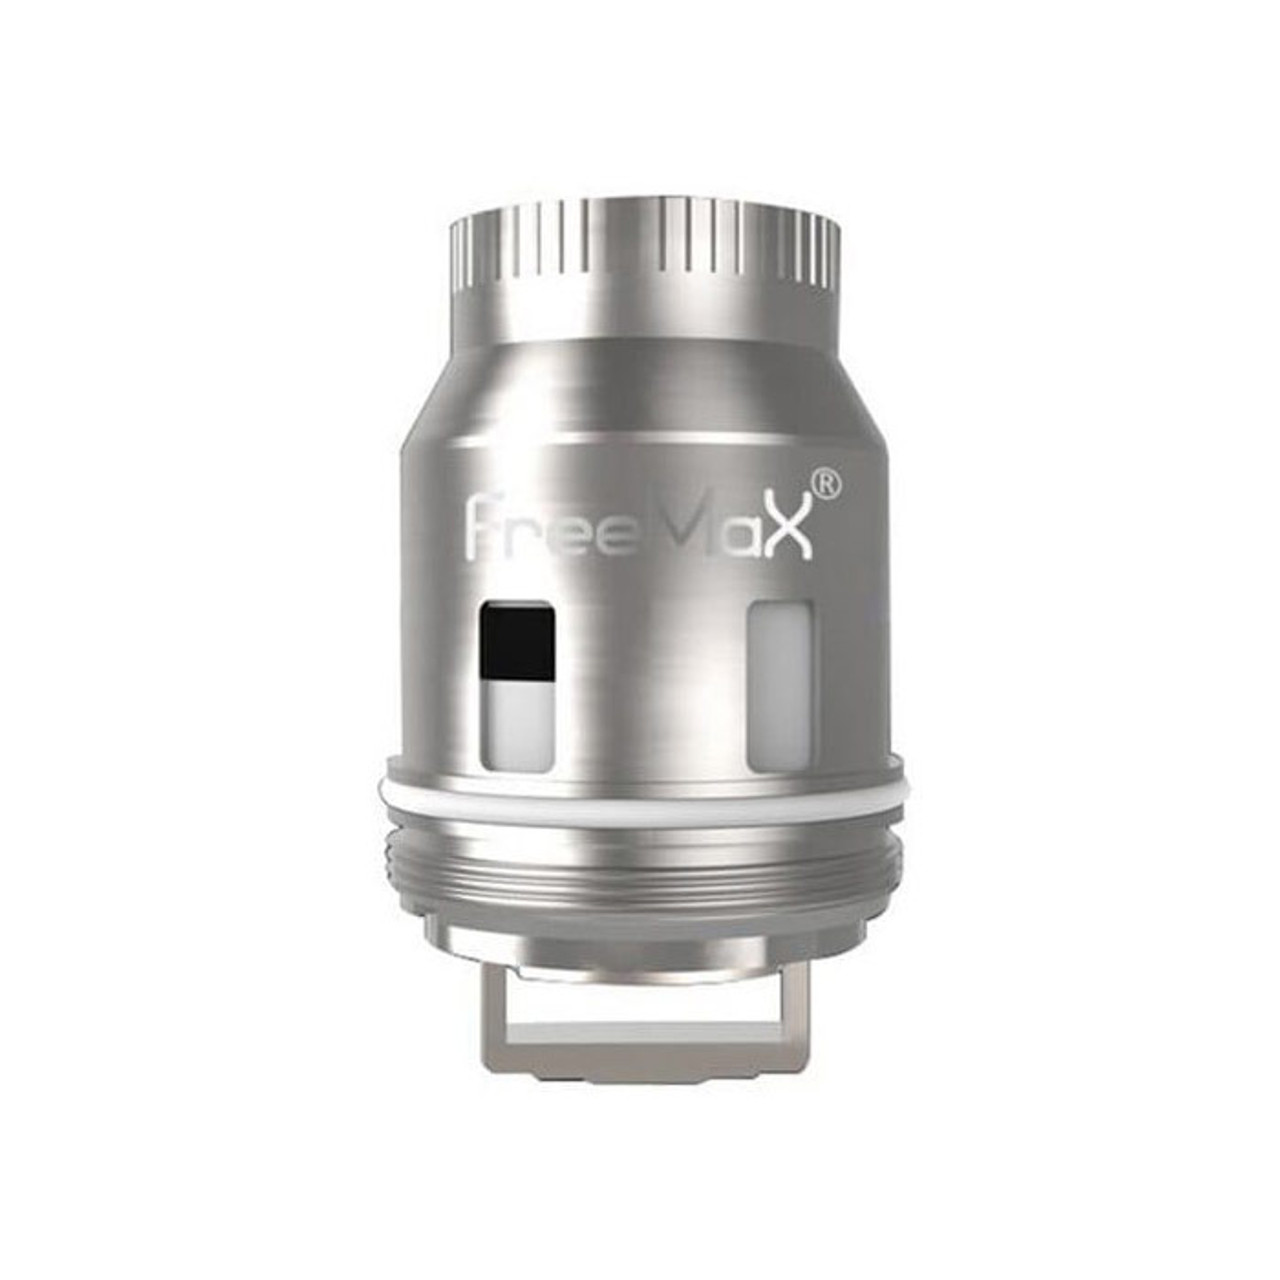 FreeMax Mesh Pro Kanthal Quintuple Mesh Replacement Coils